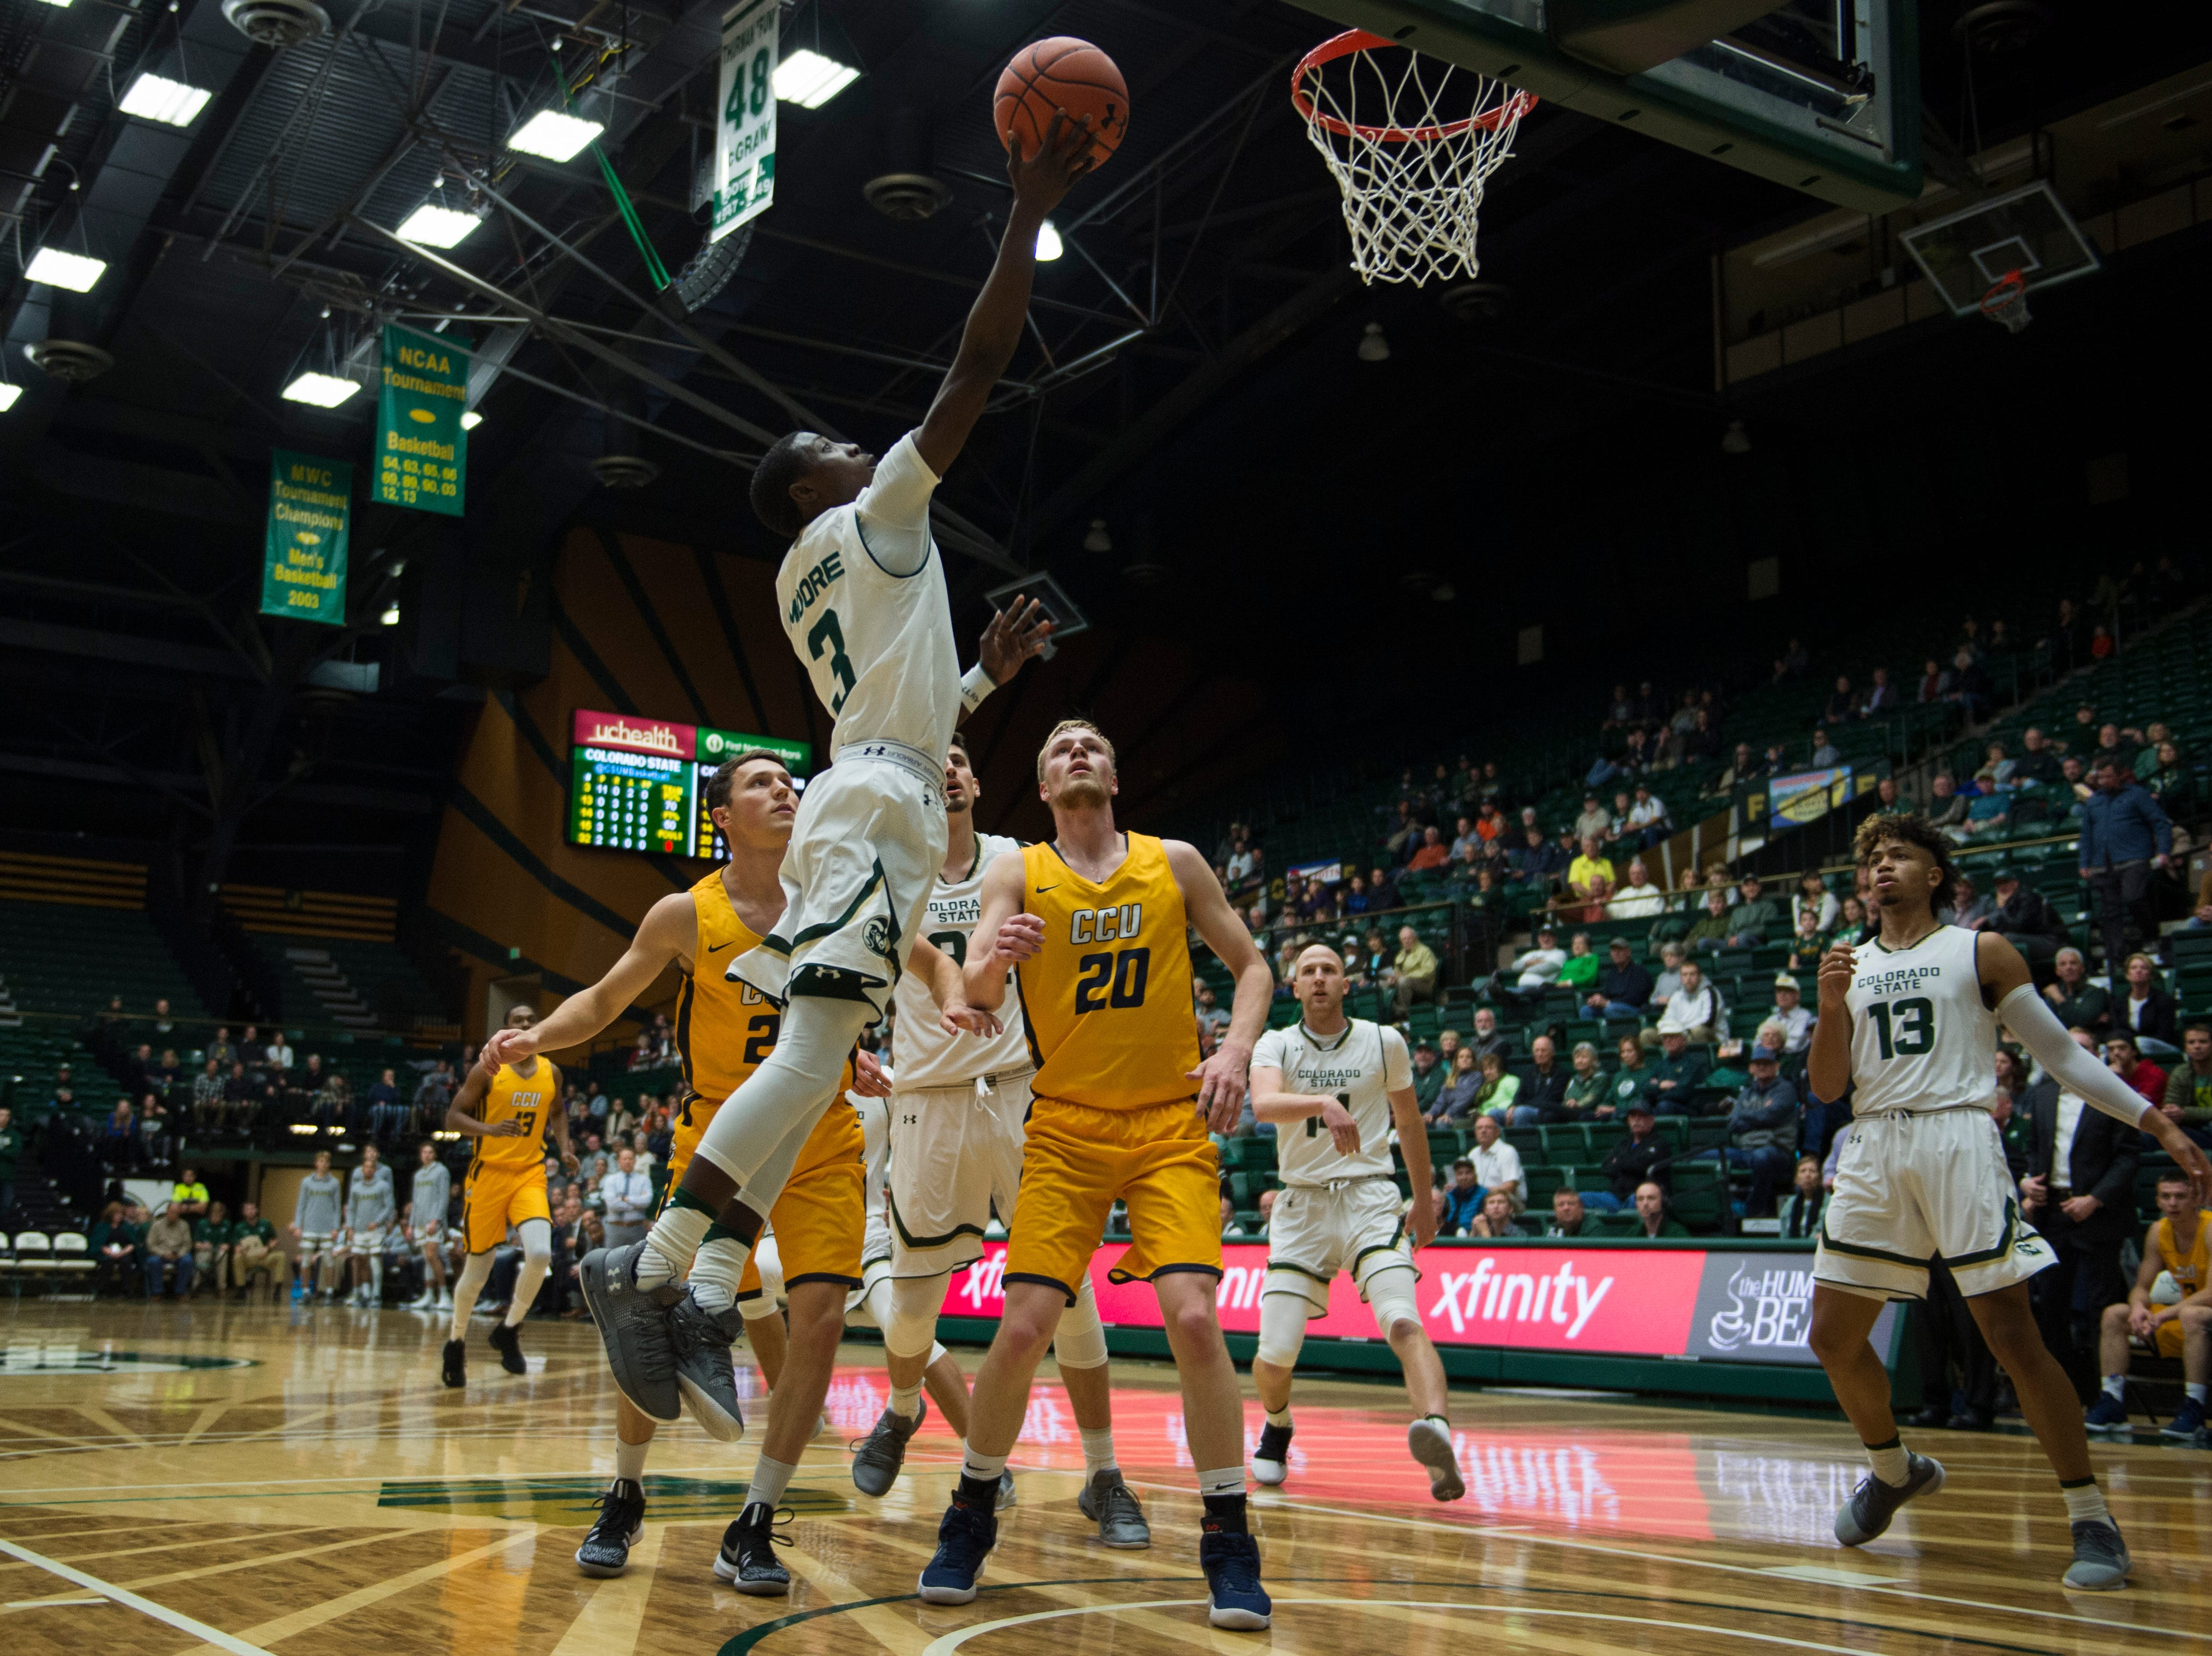 Colorado State University freshman guard Kendle Moore (3) puts a shot up during a game against Colorado Christian University on Wednesday, Nov. 7, 2018, at Moby Arena in Fort Collins, Colo.